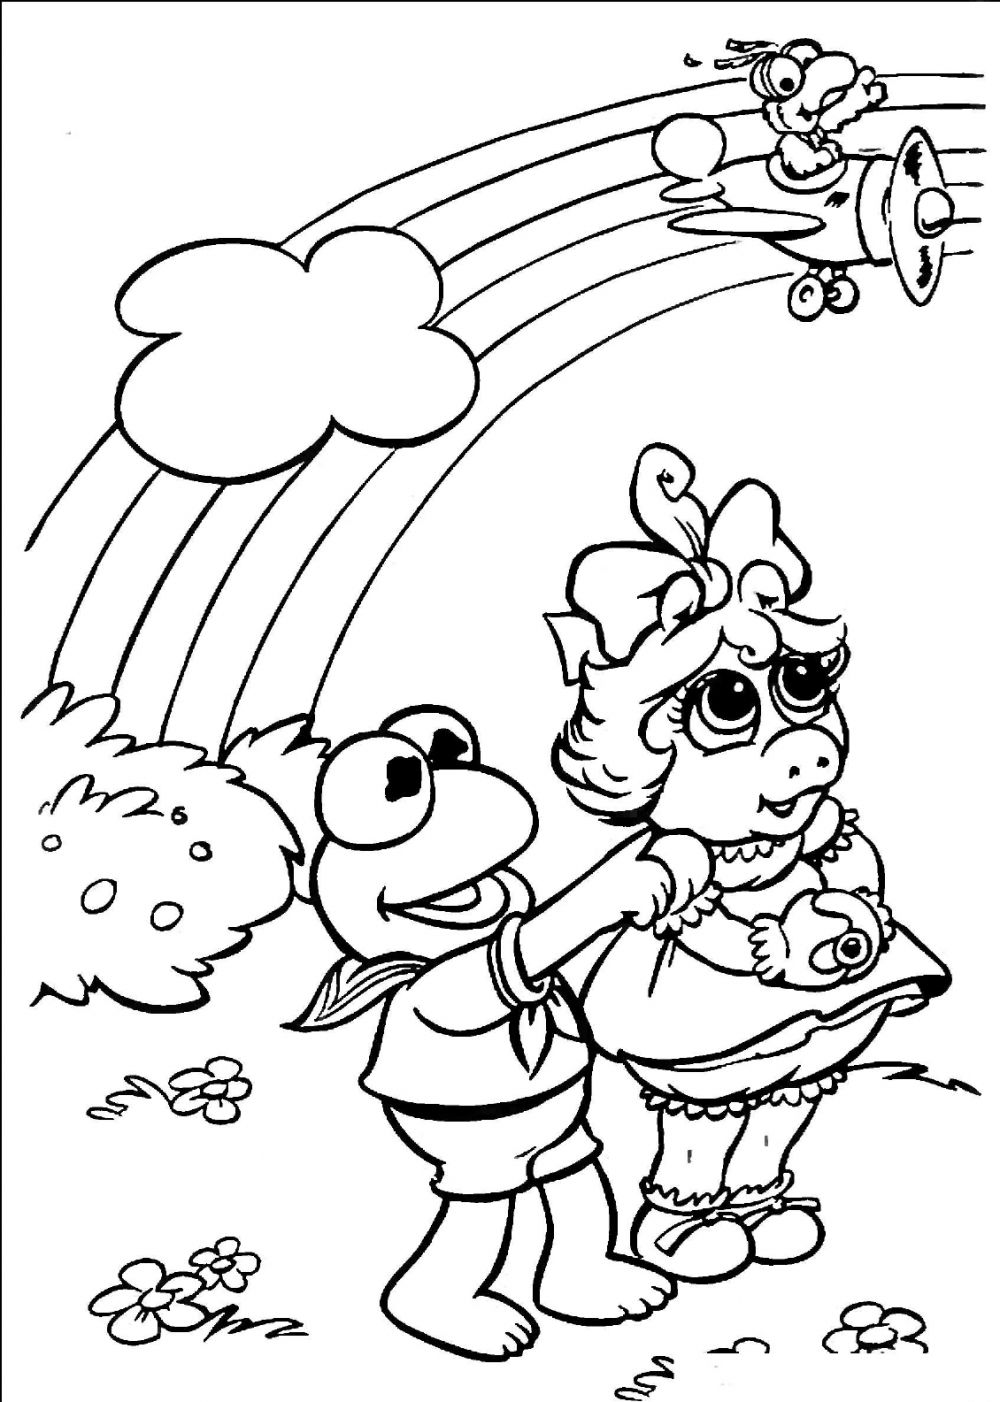 rainbow magic fairy coloring pages free printable rainbow coloring pages for kids magic rainbow pages fairy coloring